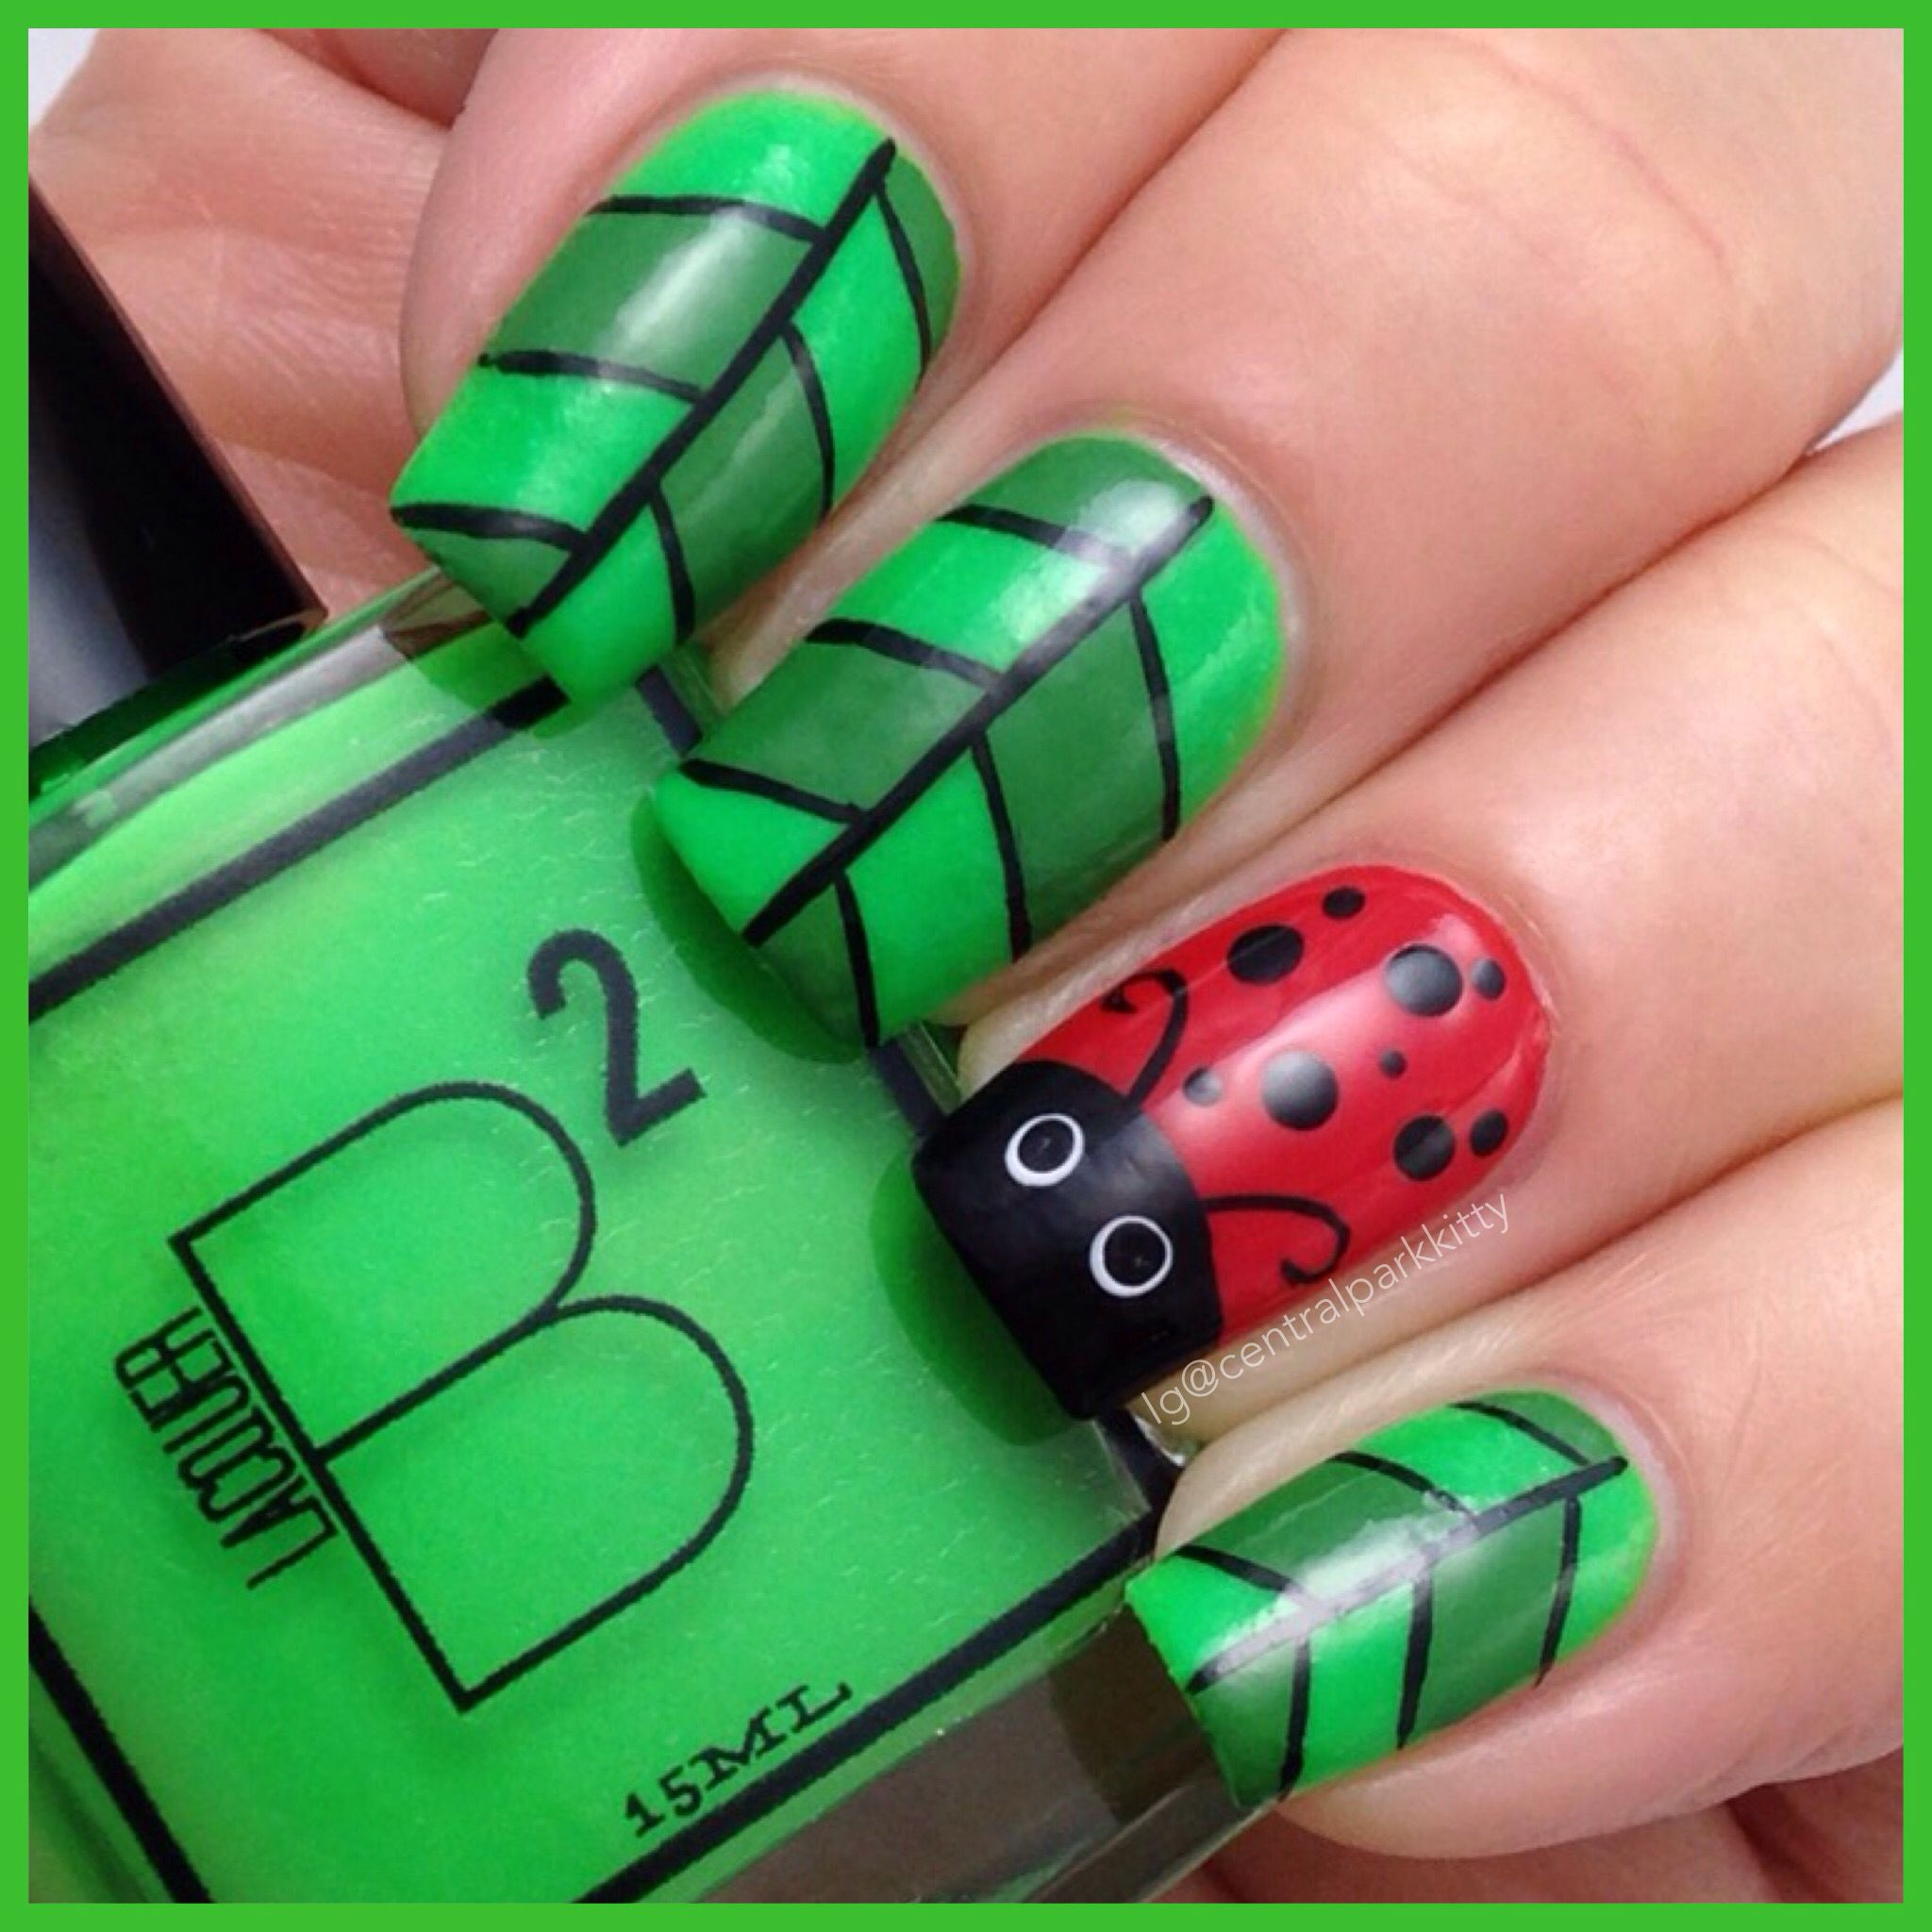 Ladybug nails | ig@centralparkkitty | Claws | Pinterest